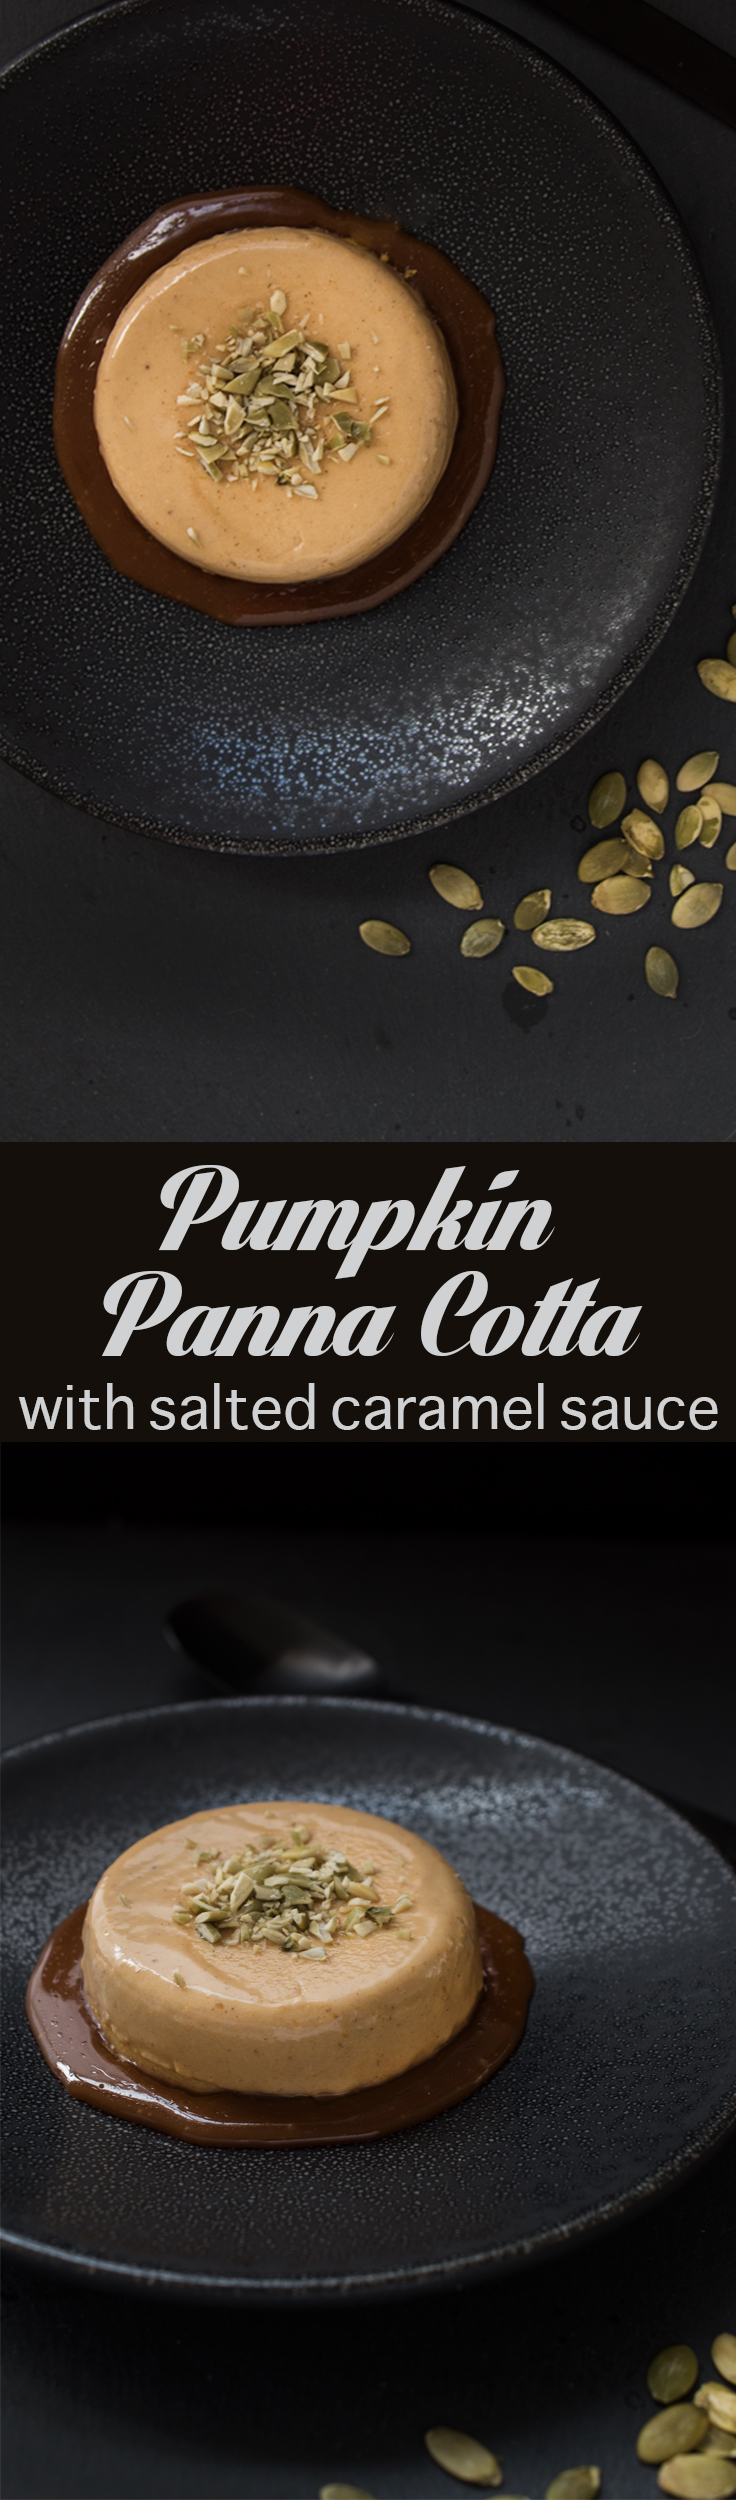 Incredibly creamy Pumpkin Panna Cotta with a Salted Caramel Sauce